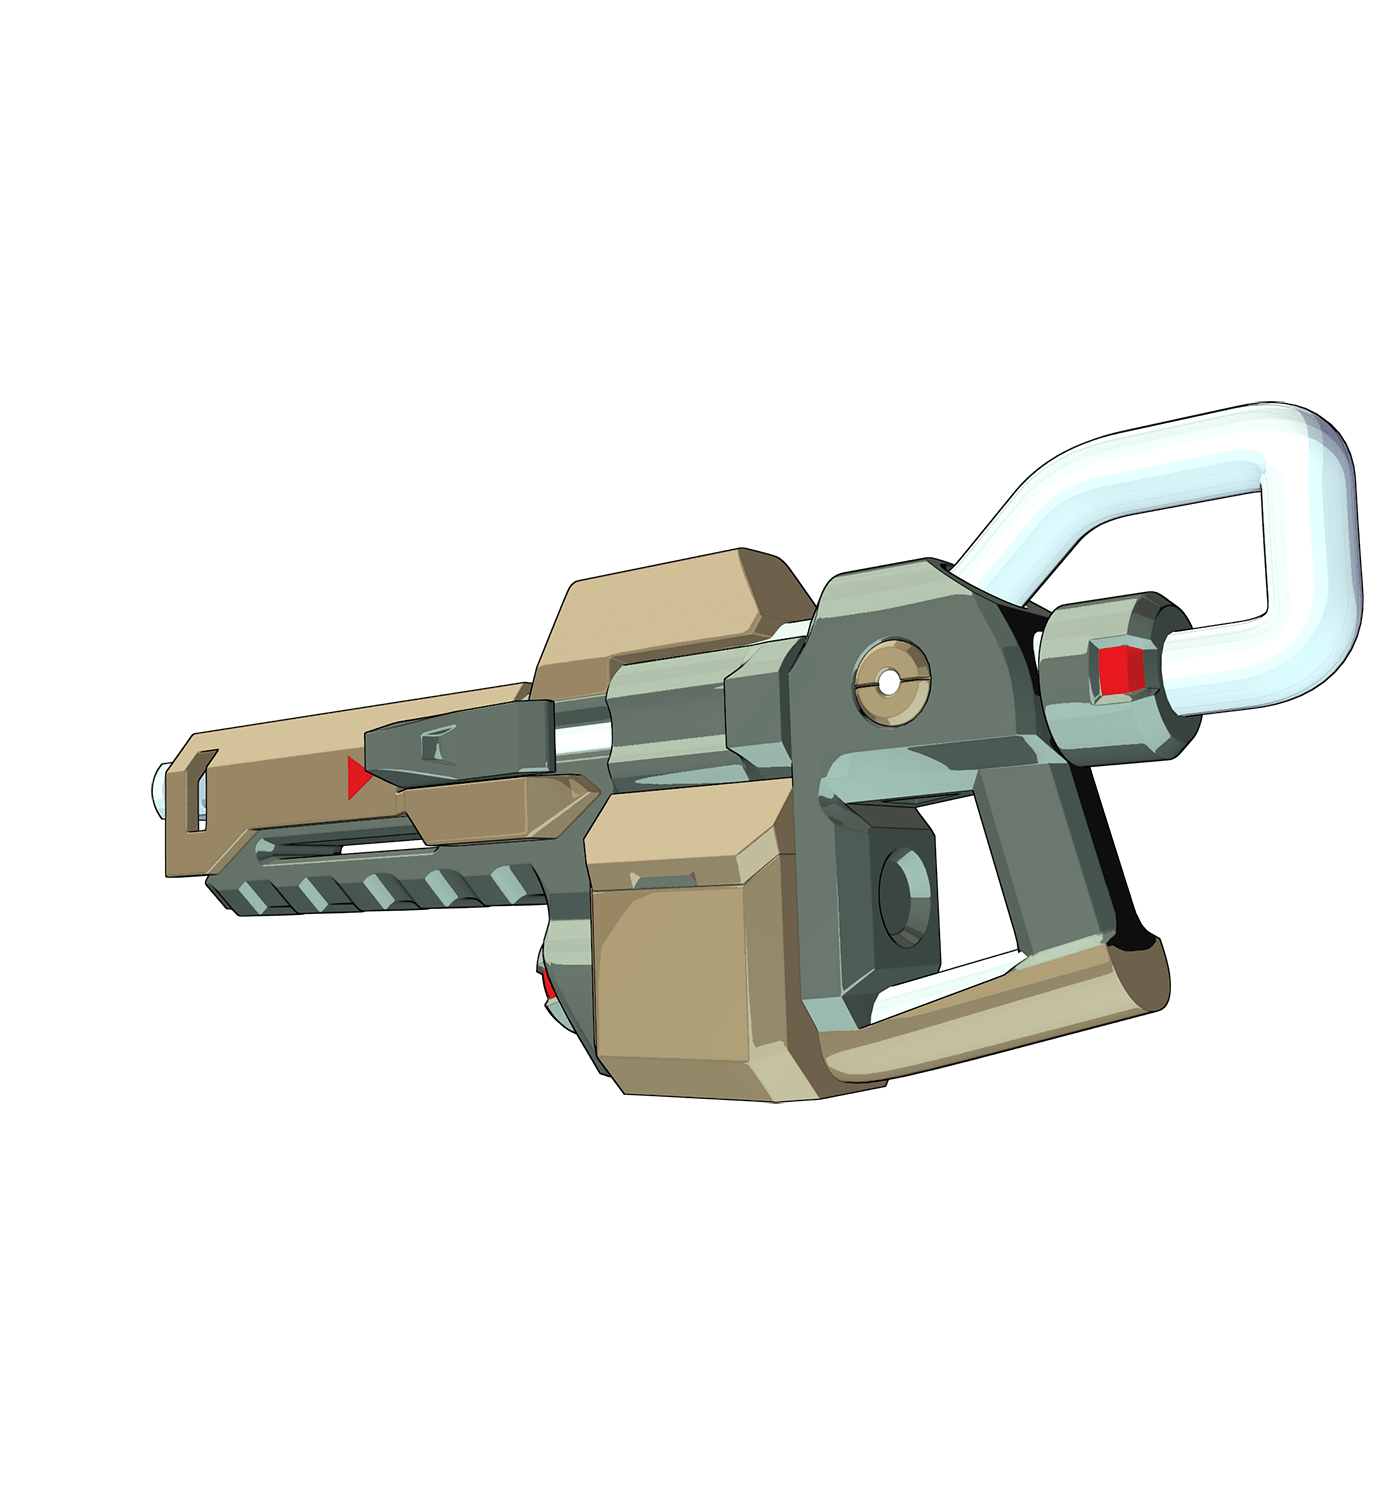 [WIP] Military mech